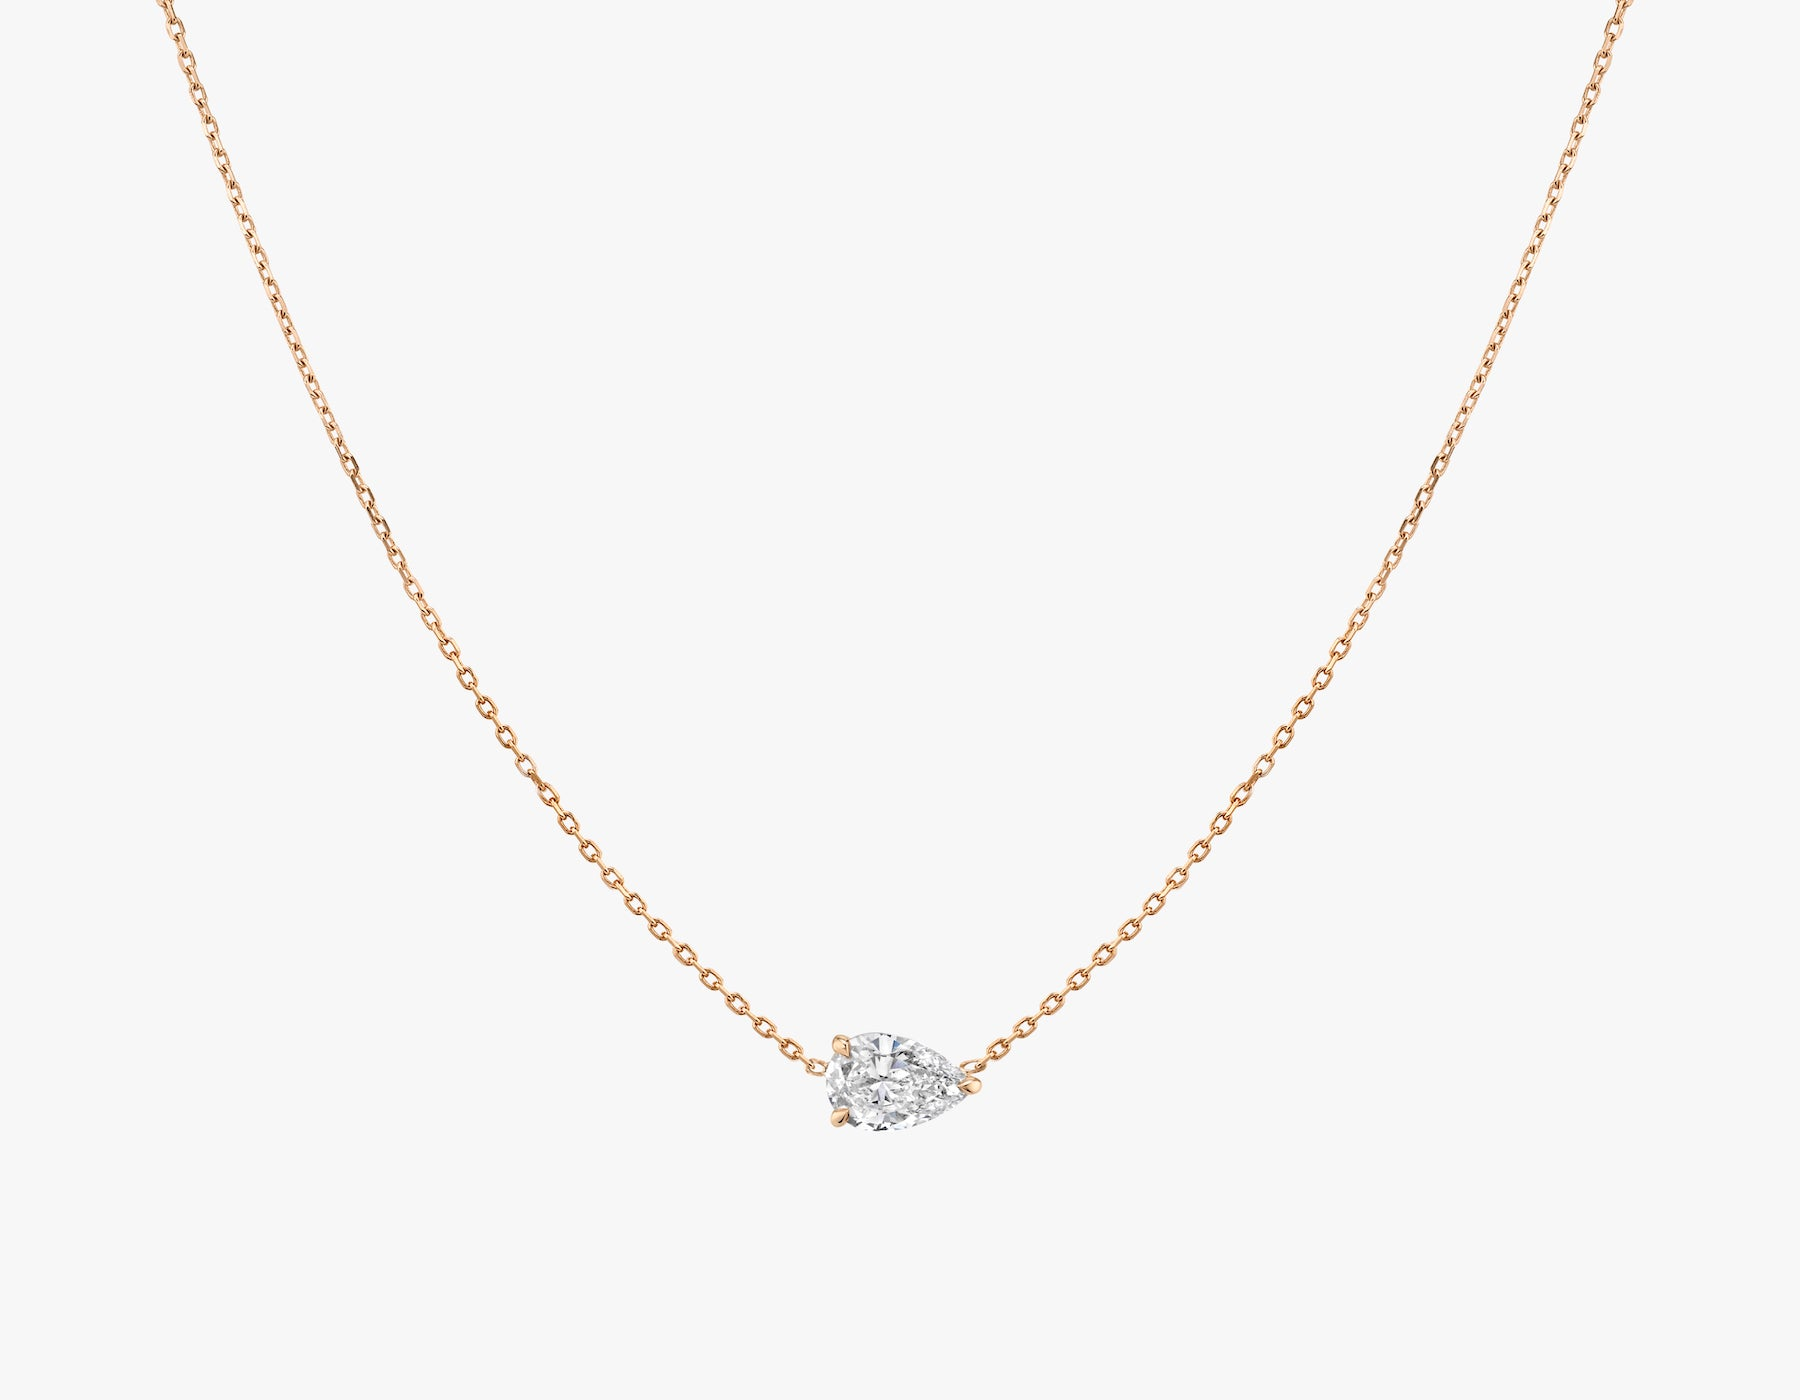 Vrai 14K solid gold solitaire pear diamond necklace 1ct minimalist delicate, 14K Rose Gold